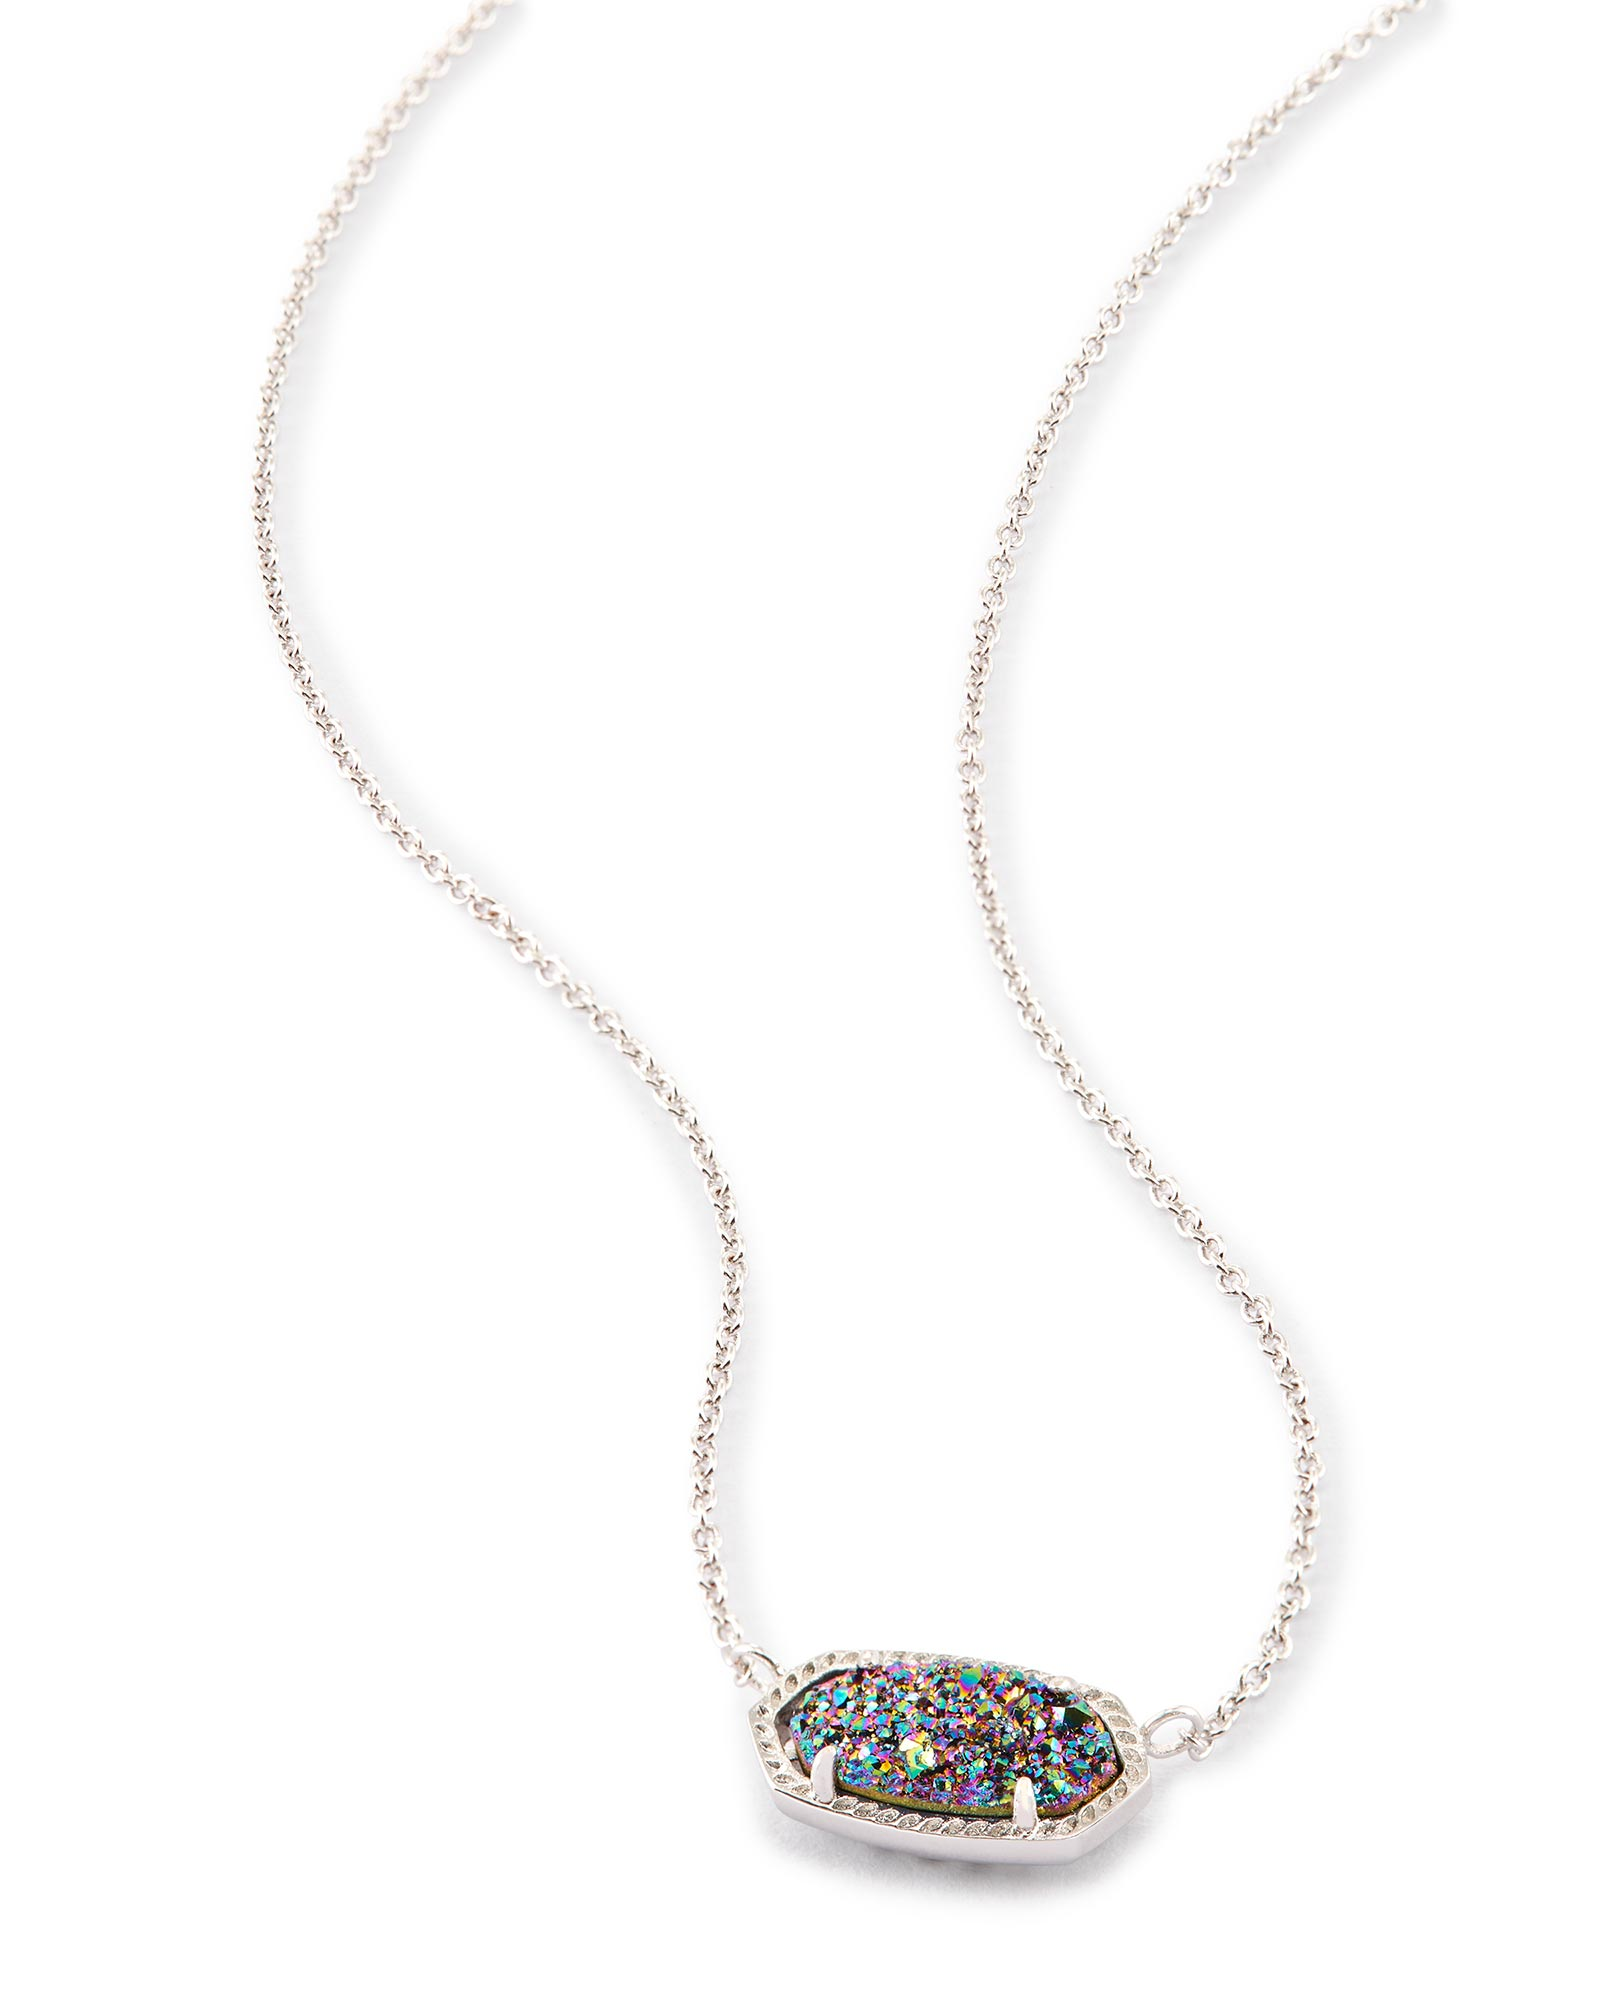 Elisa Silver Pendant Necklace in Multi-Color Drusy